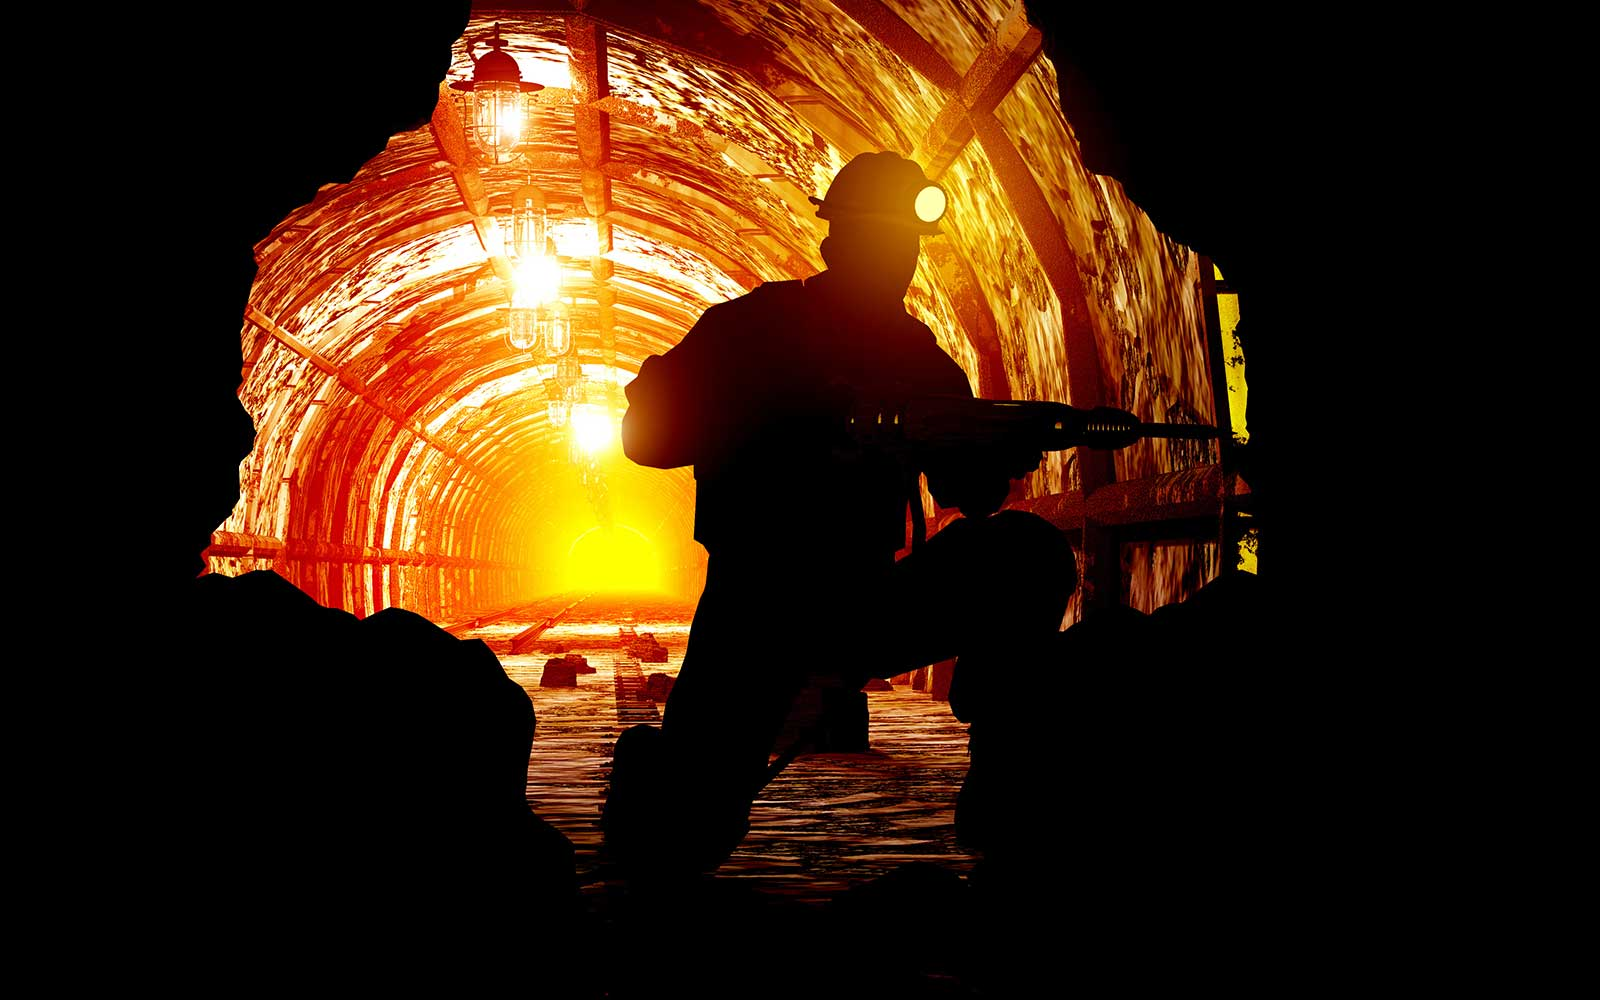 Miner drilling into rock face in a mine.